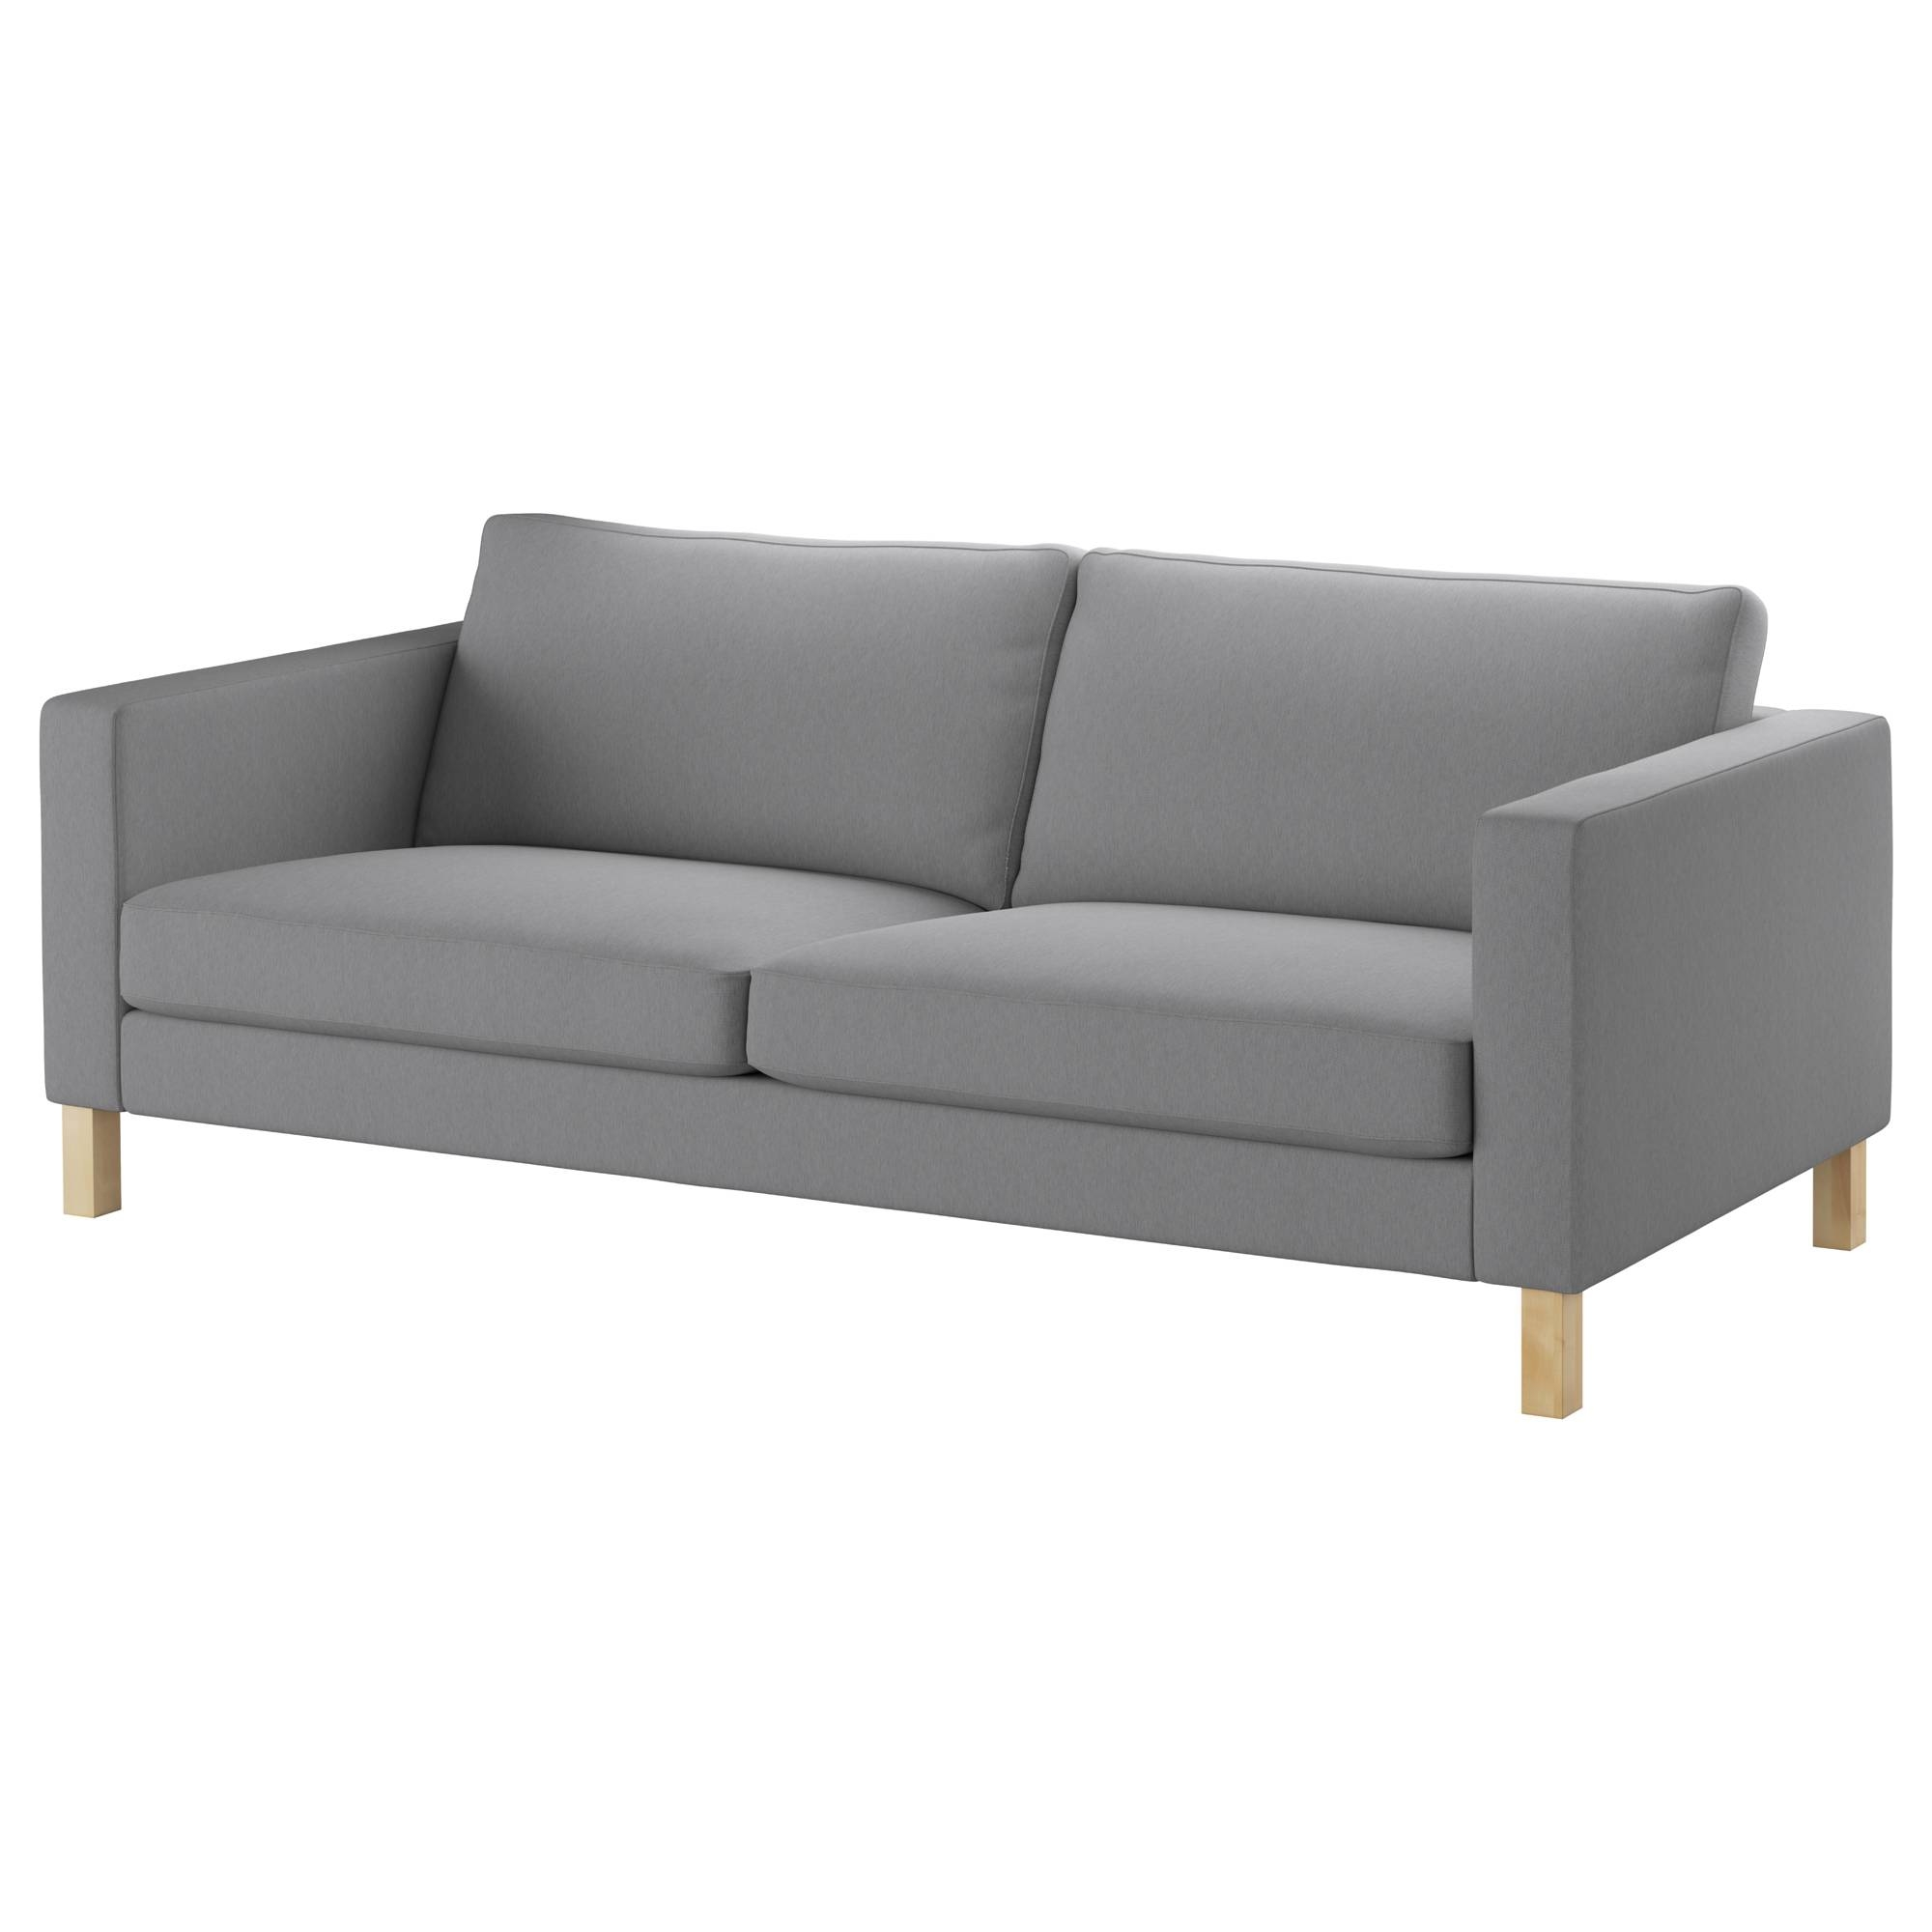 Karlstad Sofa - Ikea inside Sofa With Removable Cover (Image 16 of 30)